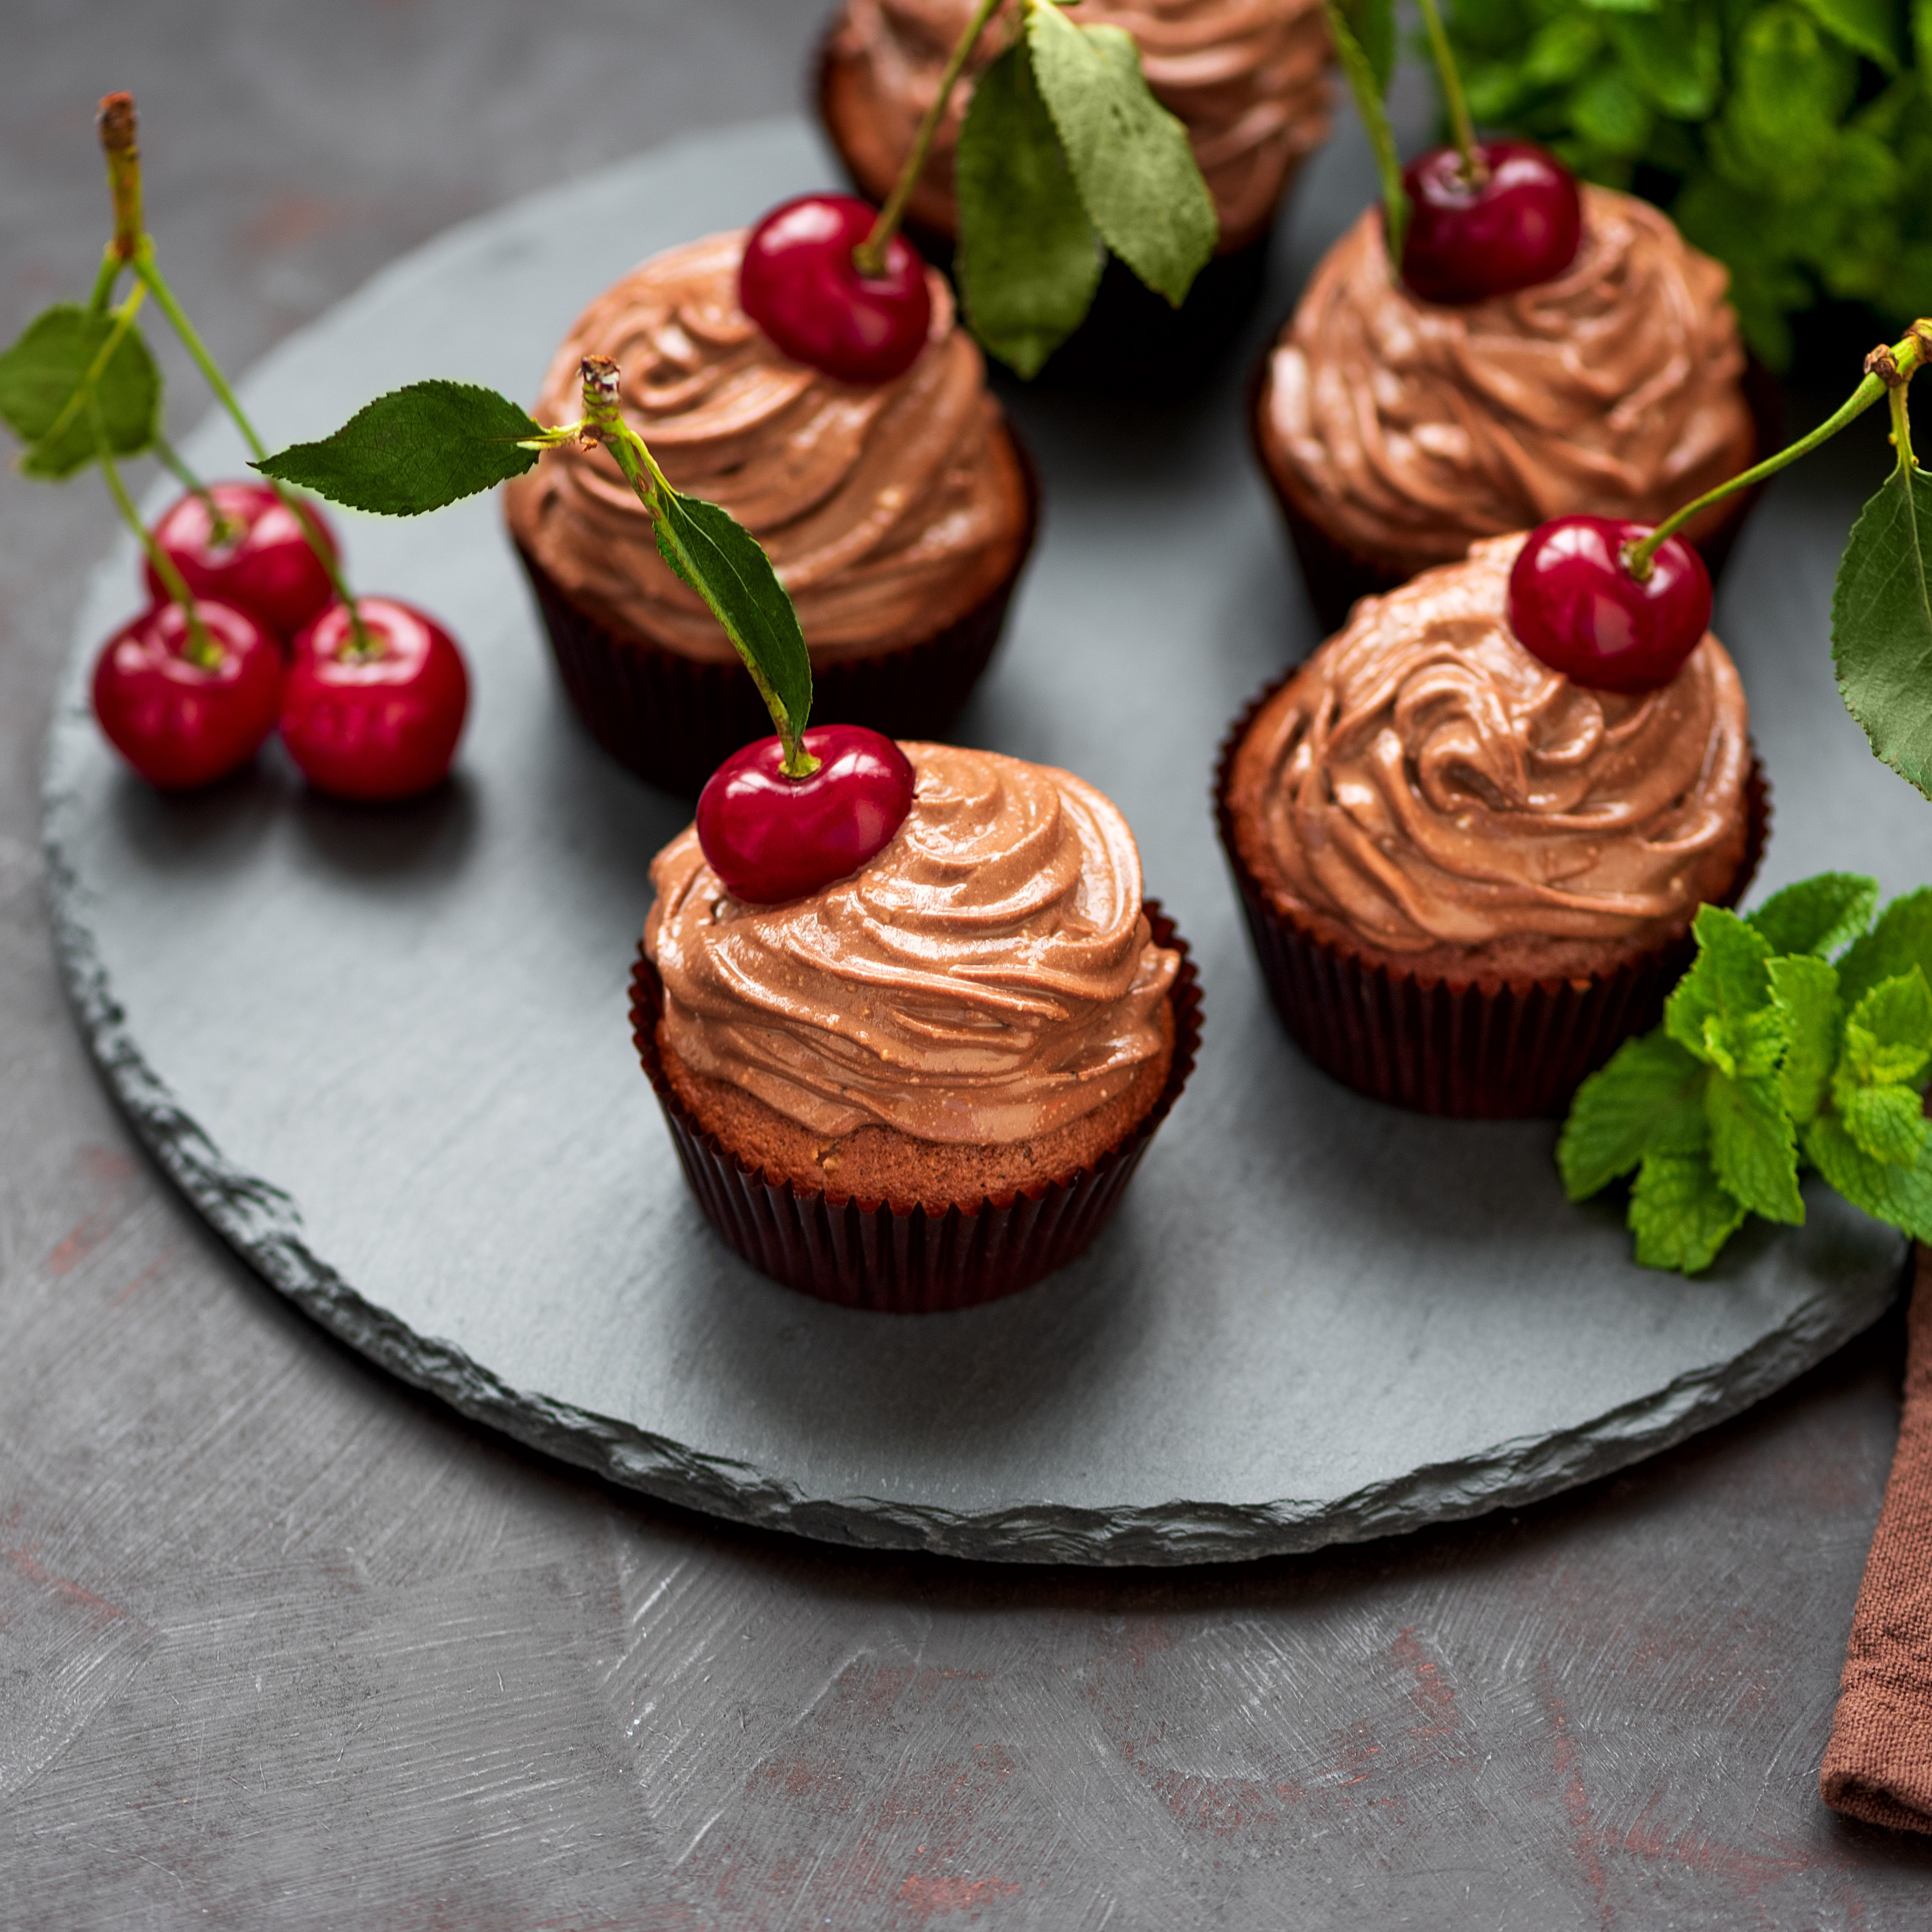 Healthy chocolate icing